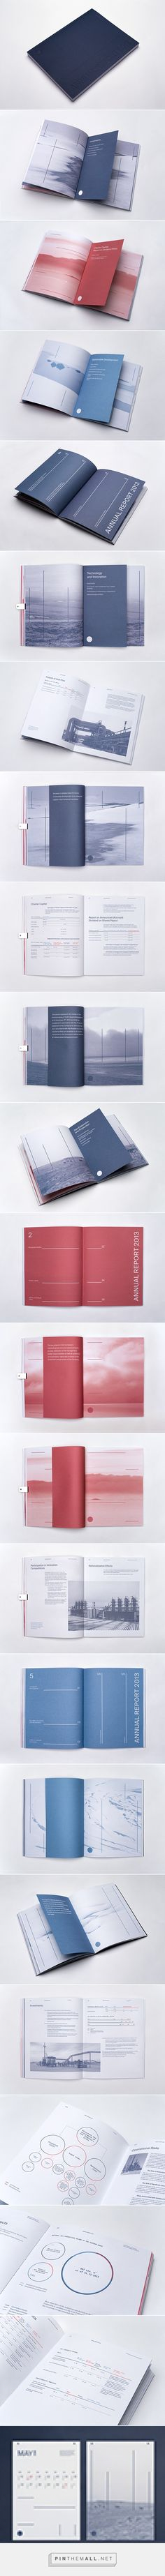 SNGP Annual Report https://www.behance.net/gallery/22767369/SNGP-Annual-Report